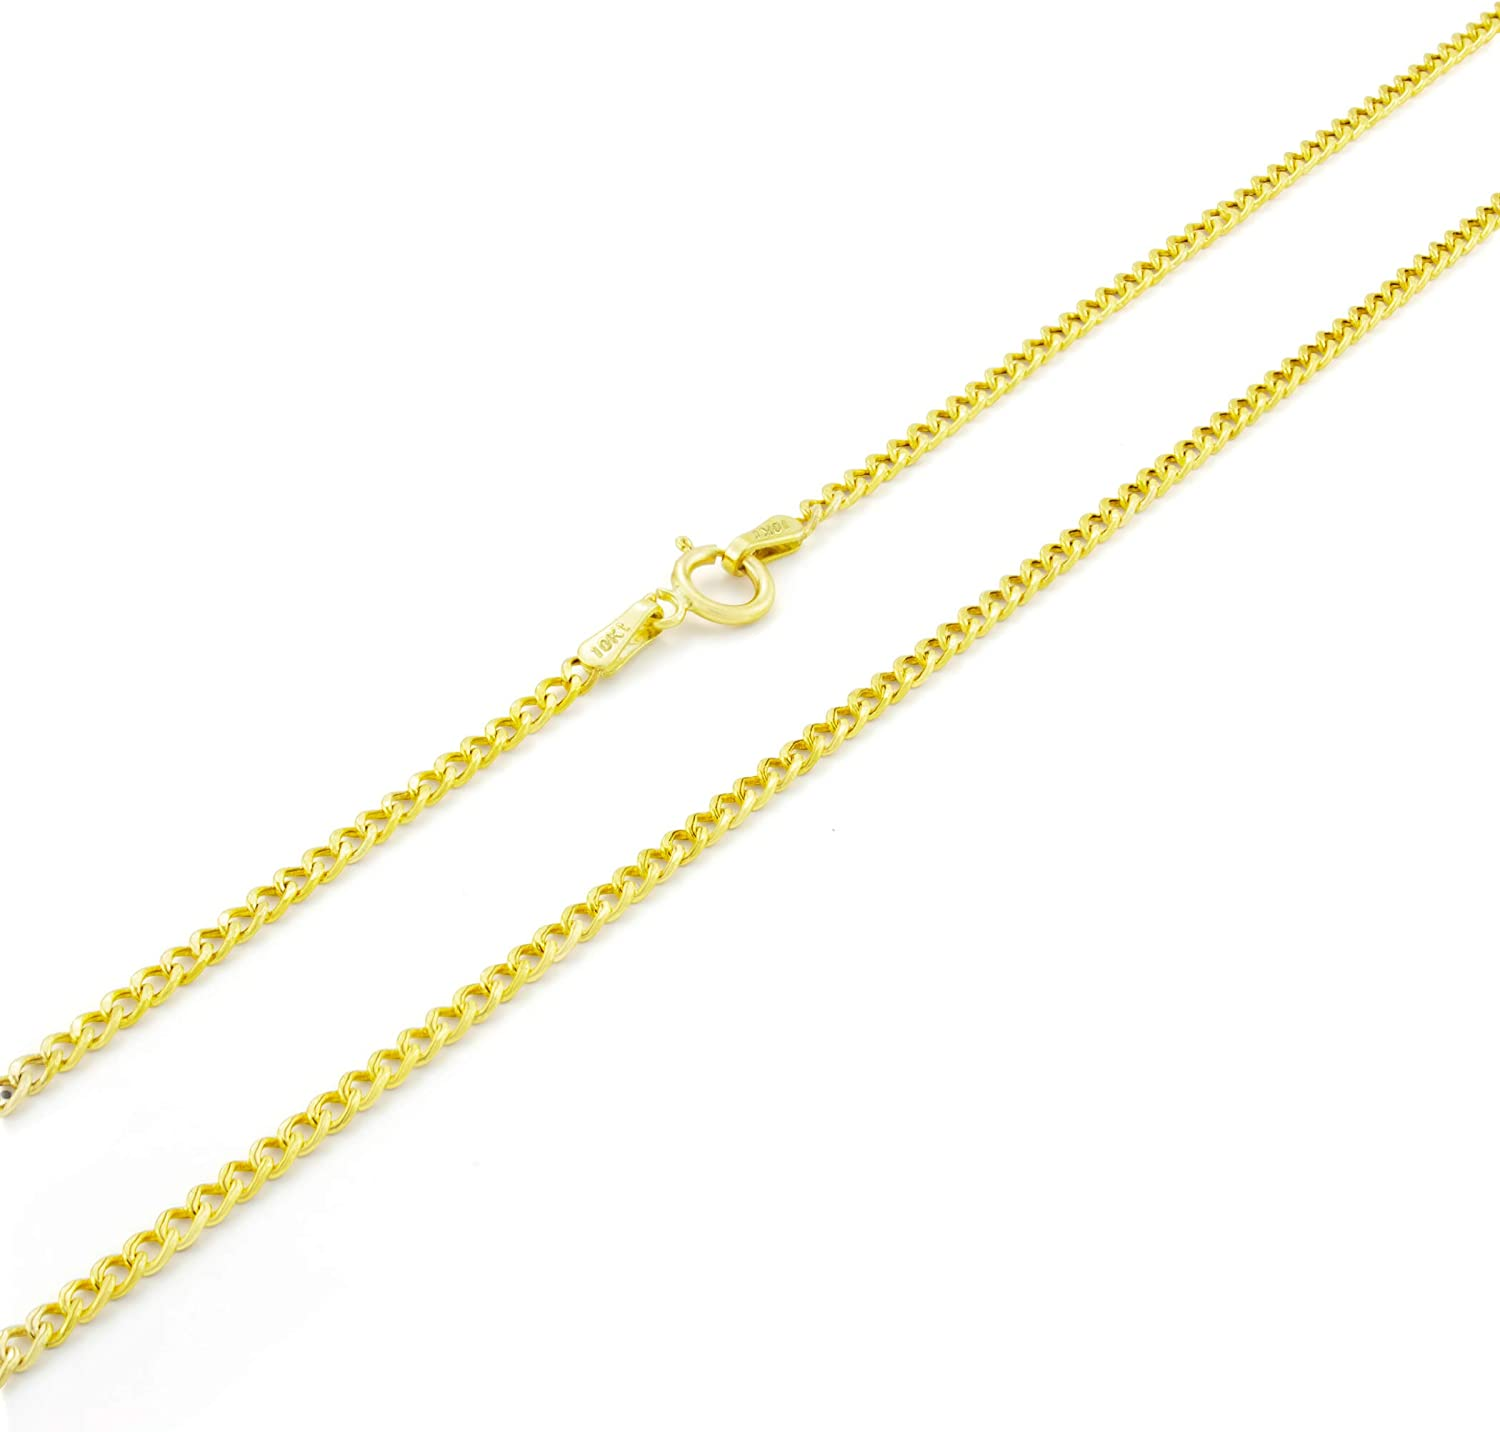 Nuragold 10k Yellow Gold 2mm Cuban Curb Link Chain Pendant Necklace, Womens Mens Jewelry 16